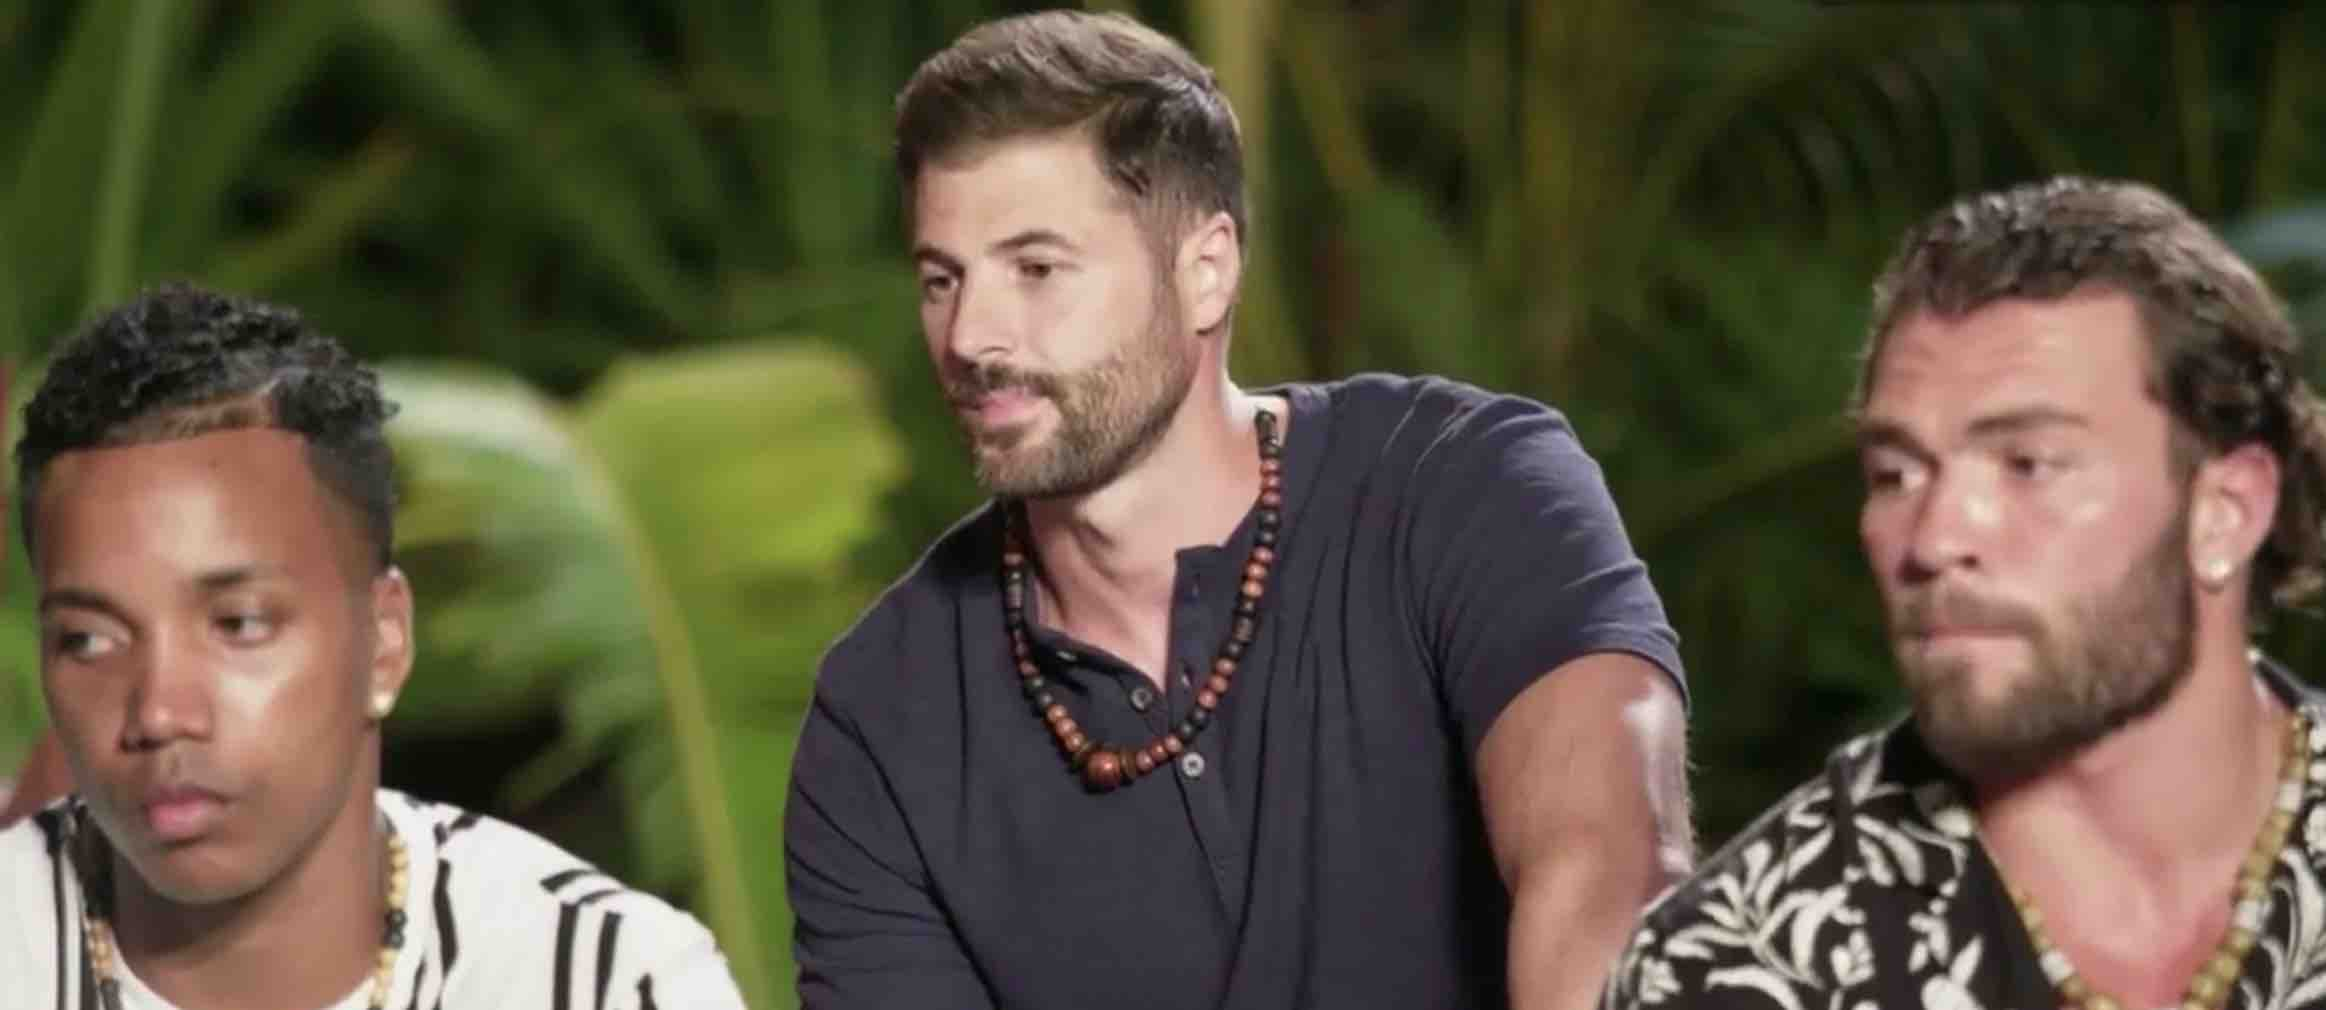 Temptation Island Season 3 Episode Recap: The Tables Have Turned